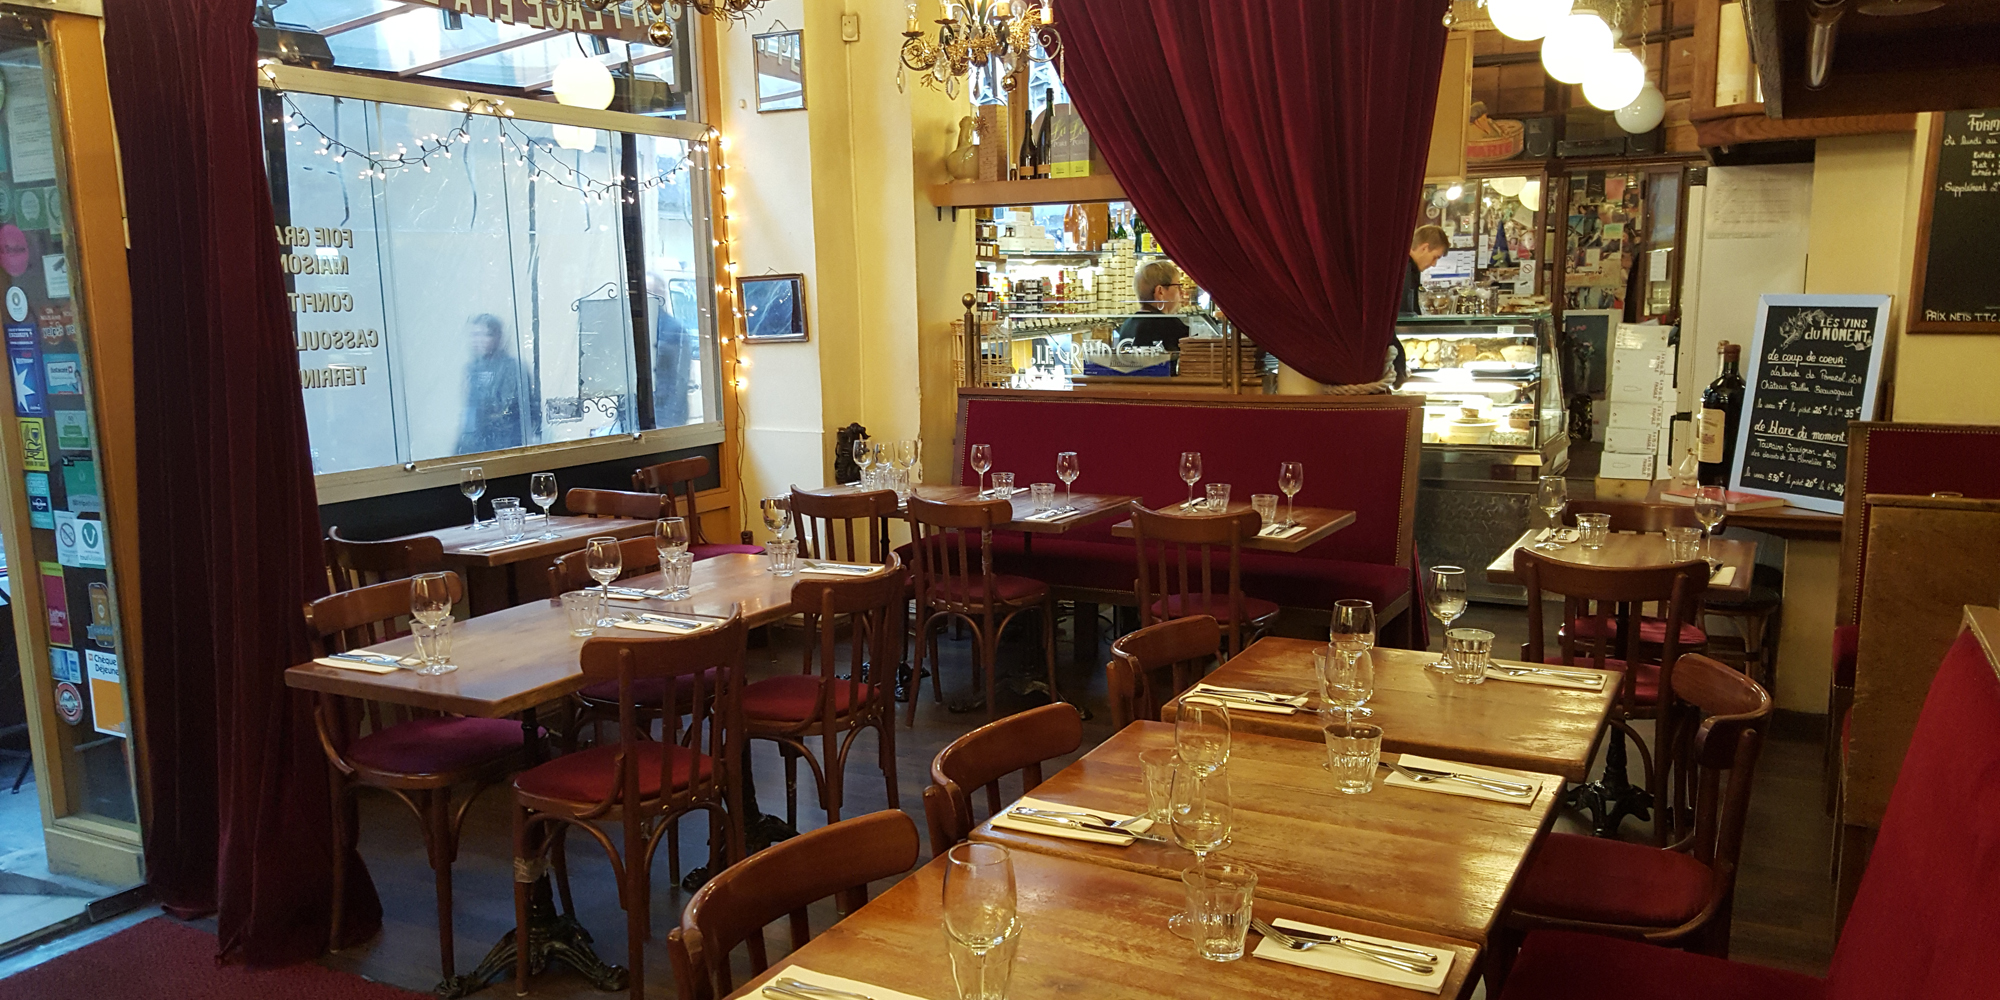 Brunch le comptoir de la gastronomie 75001 paris - Le comptoir general brunch ...